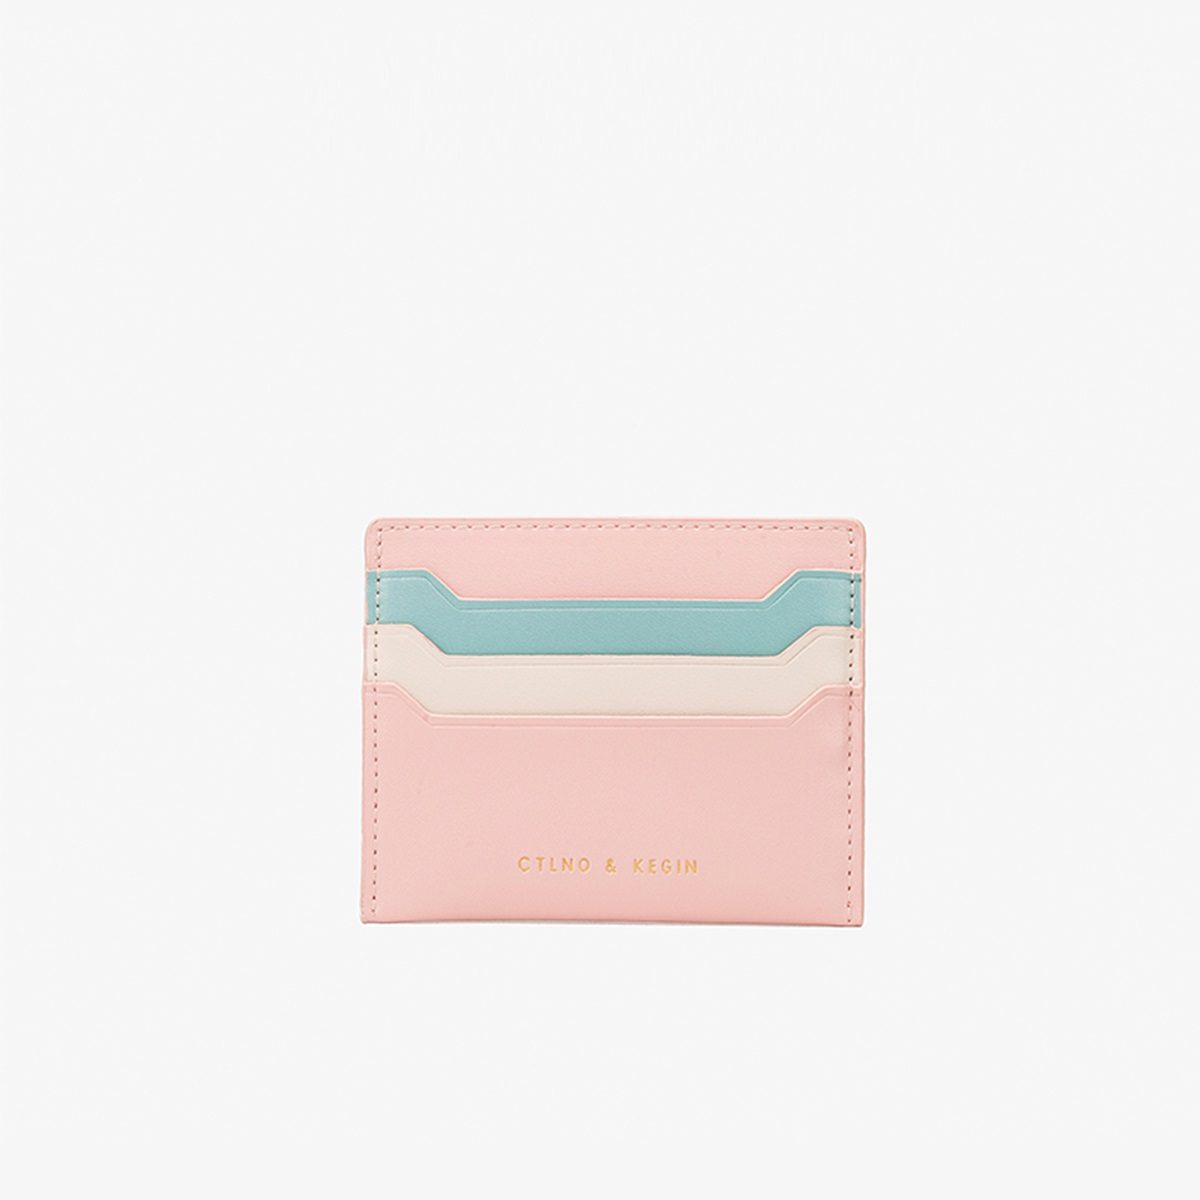 New products of xiaock spring 2020 fashion macarone color matching Mini Wallet Card bag practical design bag for women